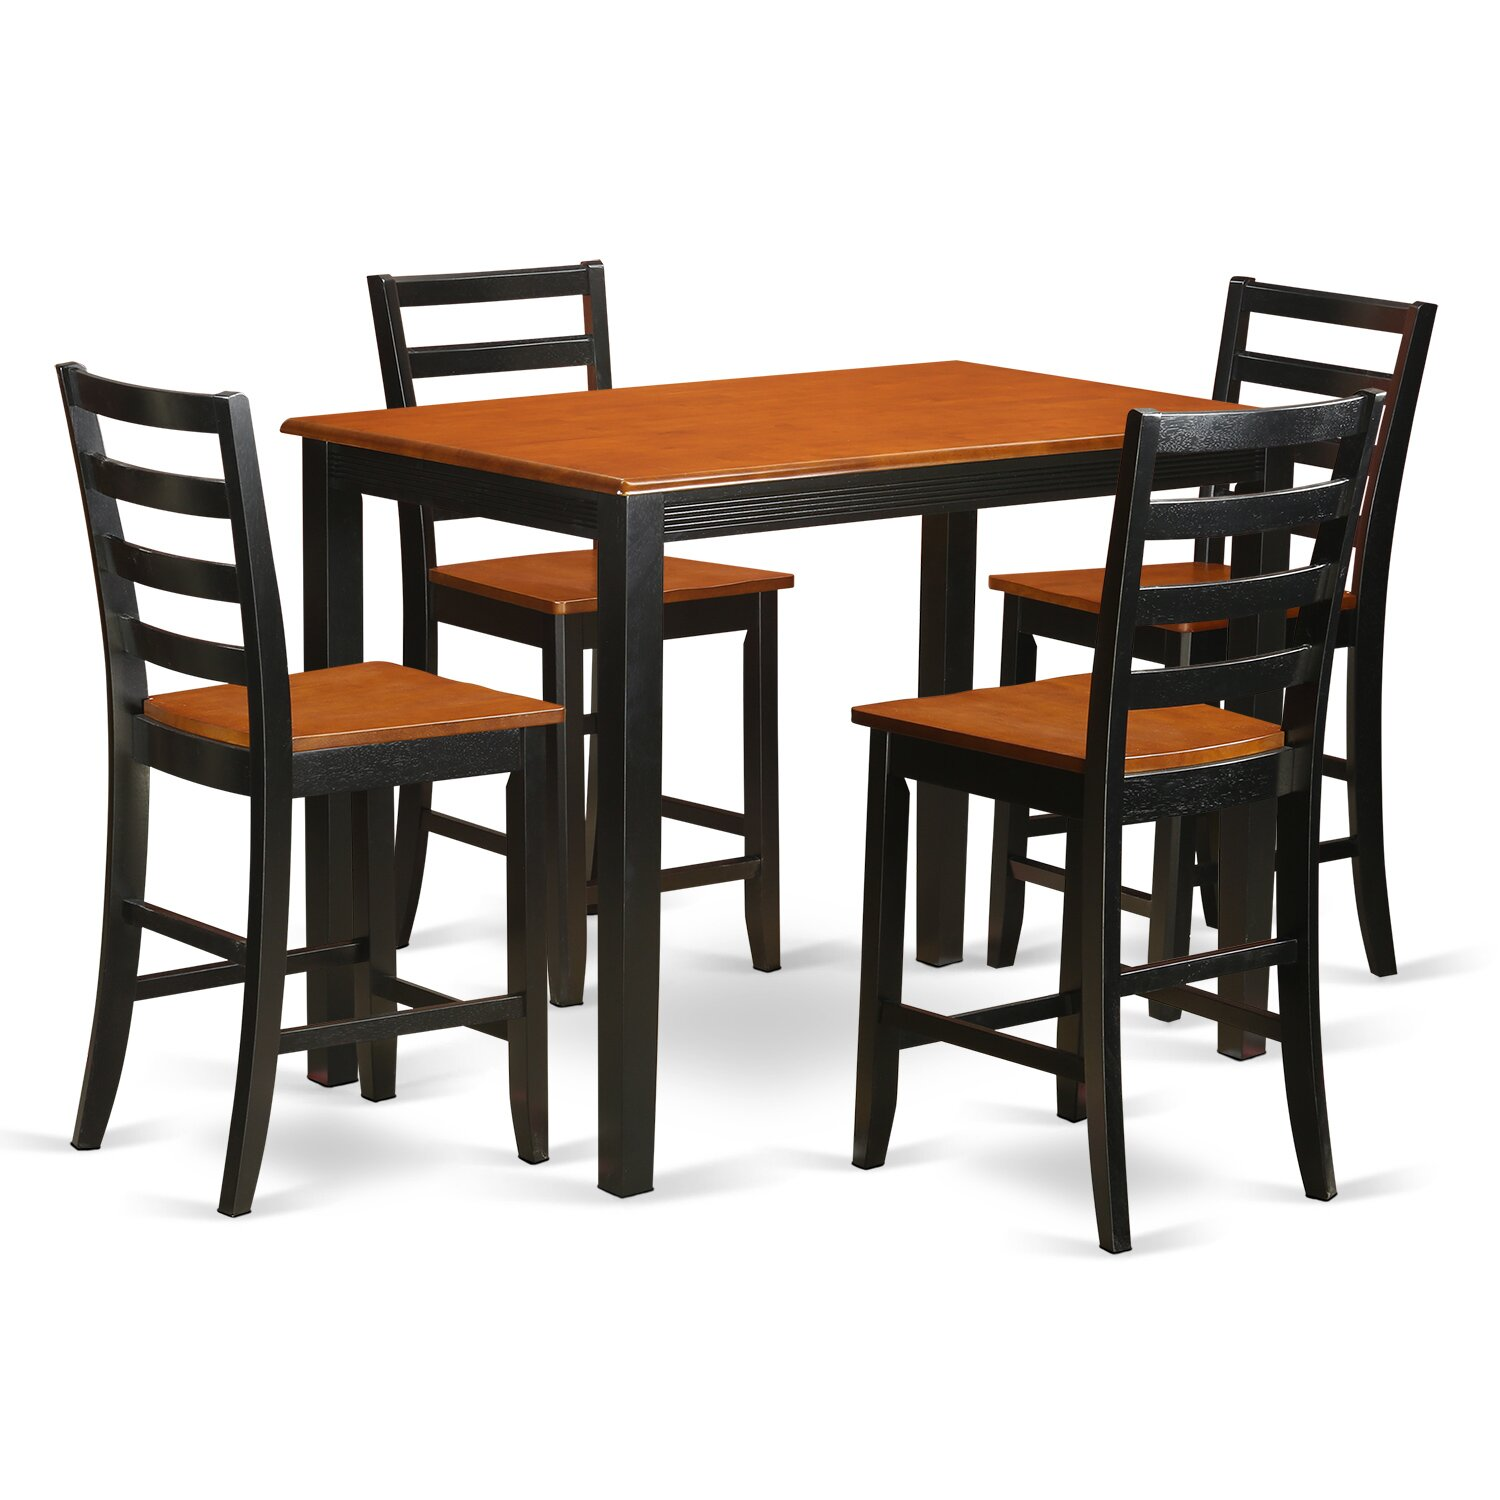 Wooden Importers Yarmouth 5 Piece Counter Height Pub Table Set Wayfair Supply